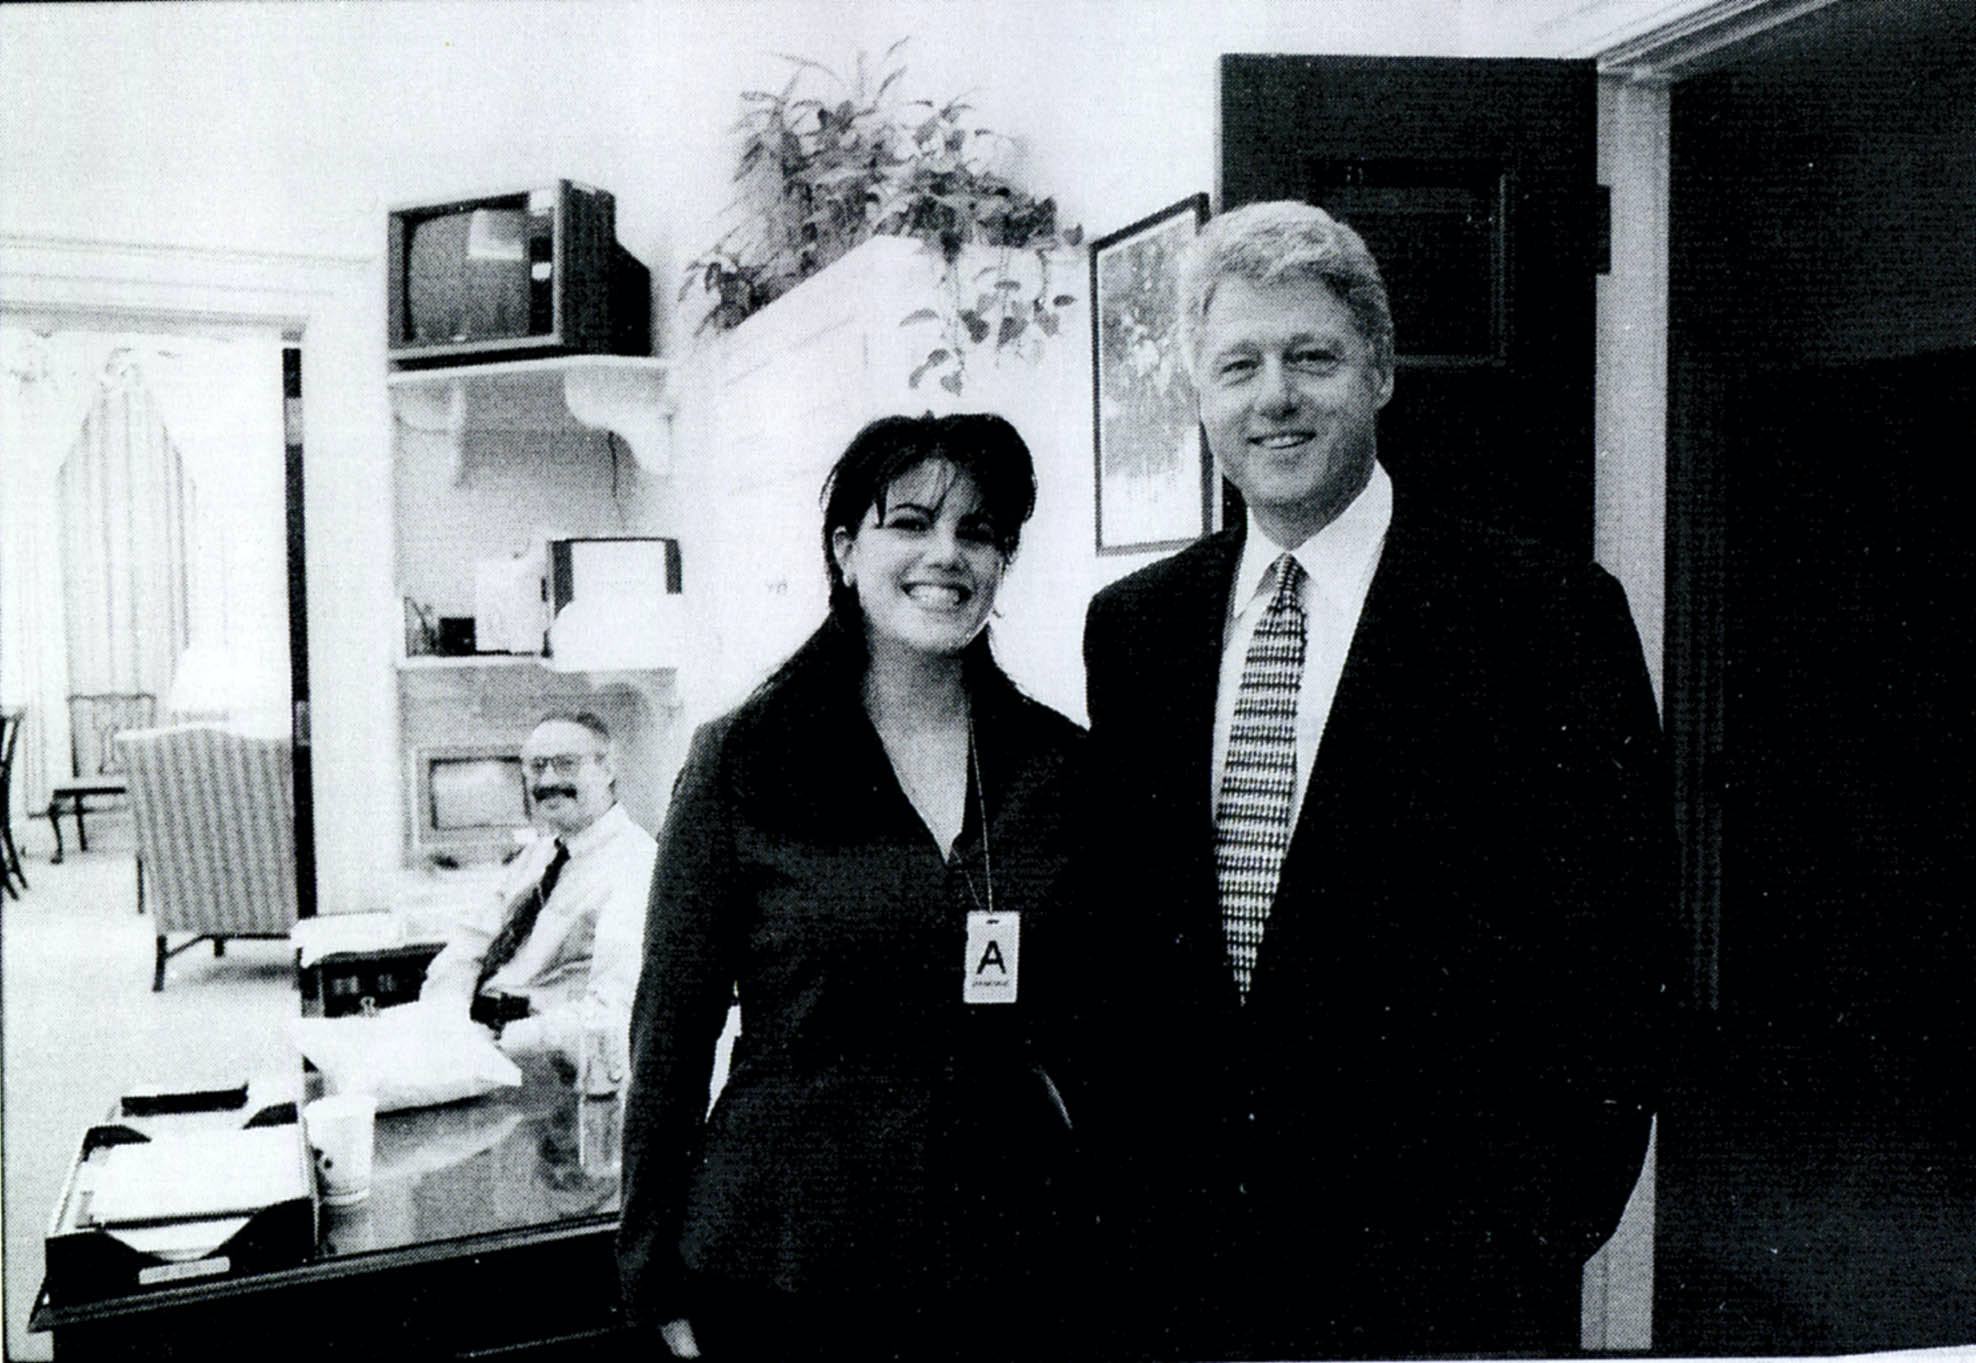 Have Monica lewinsky young pics consider, what